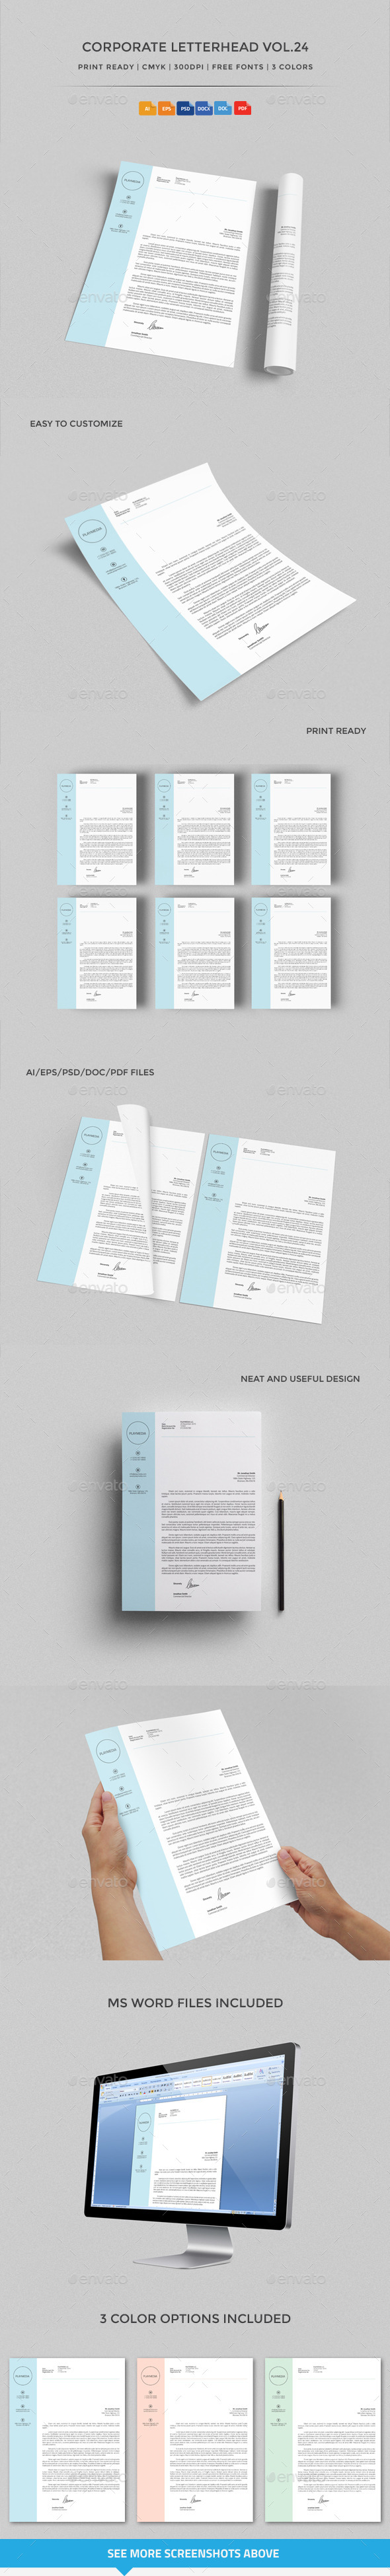 GraphicRiver Corporate Letterhead vol.24 with MS Word DOC DOCX 10702034